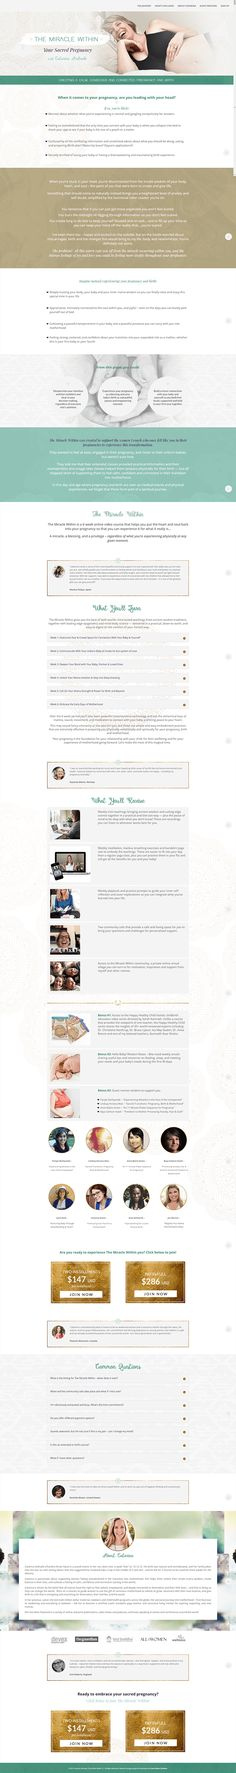 Miracle Withing Sales Page - design by Coral Antler Creative Landing Page Design, Business Website, Web Design, Coral, Coding, Branding, Ads, Inspiration, Marketing